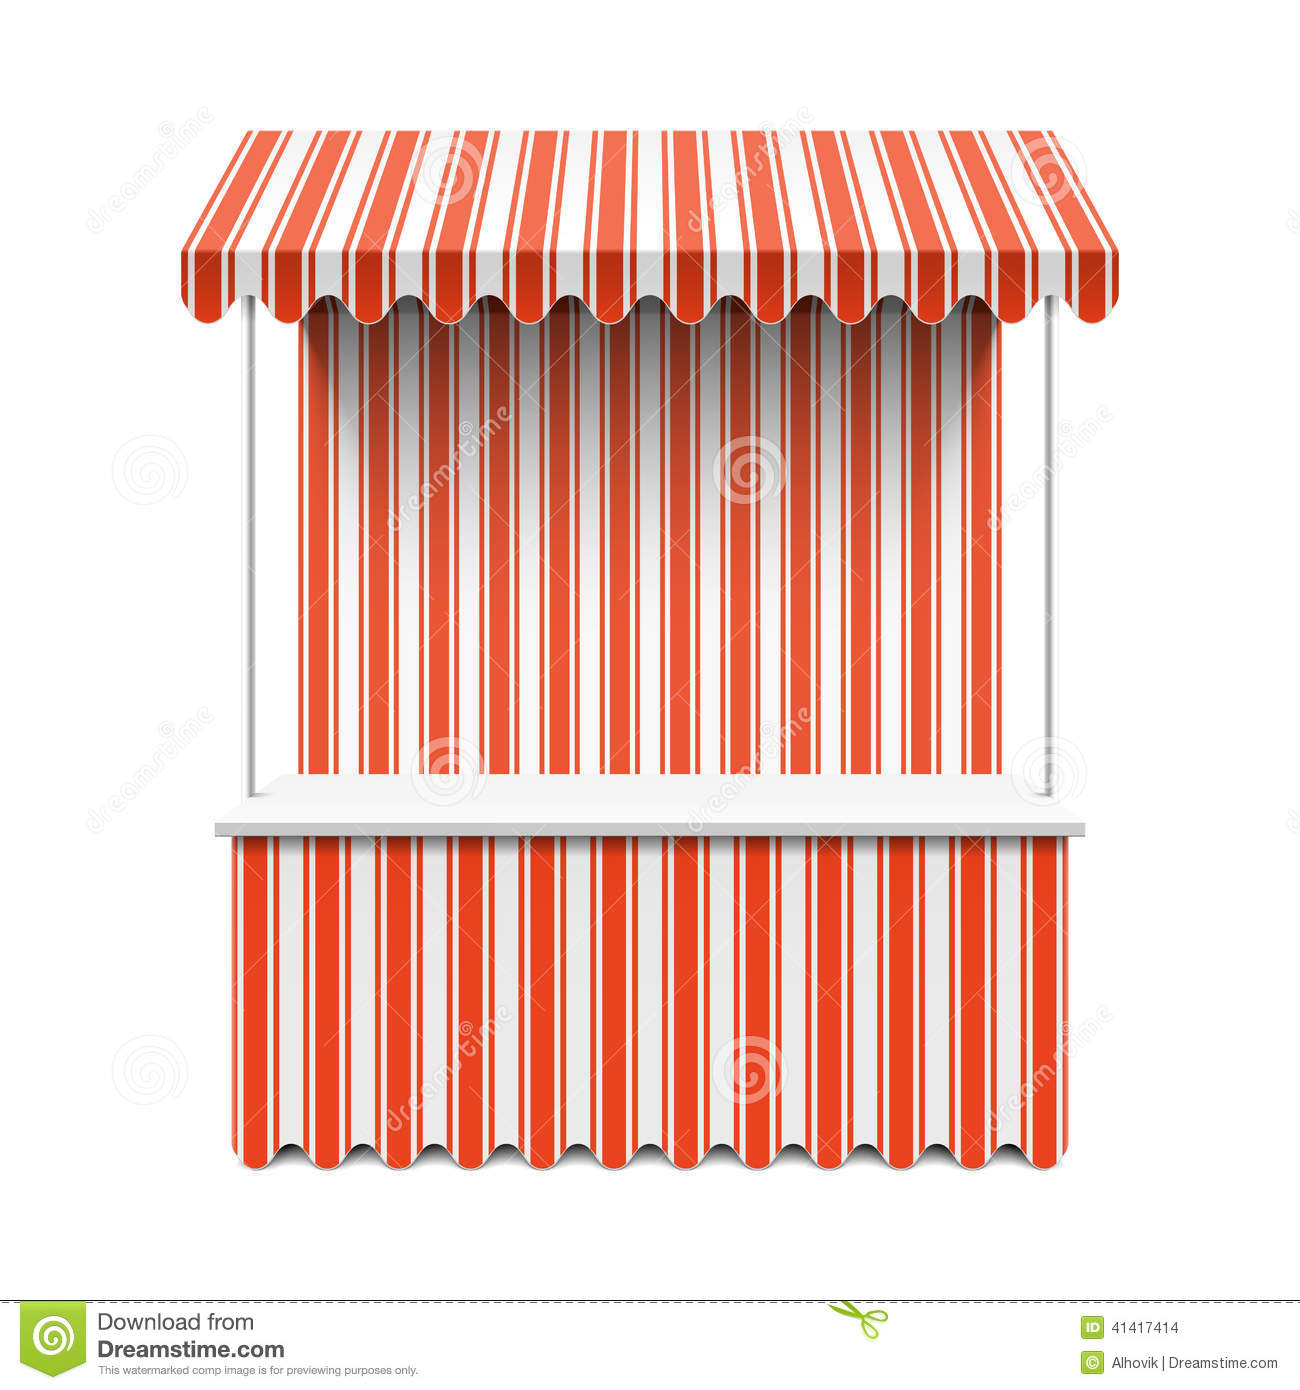 Market Stall Stock Vector - Image: 41417414